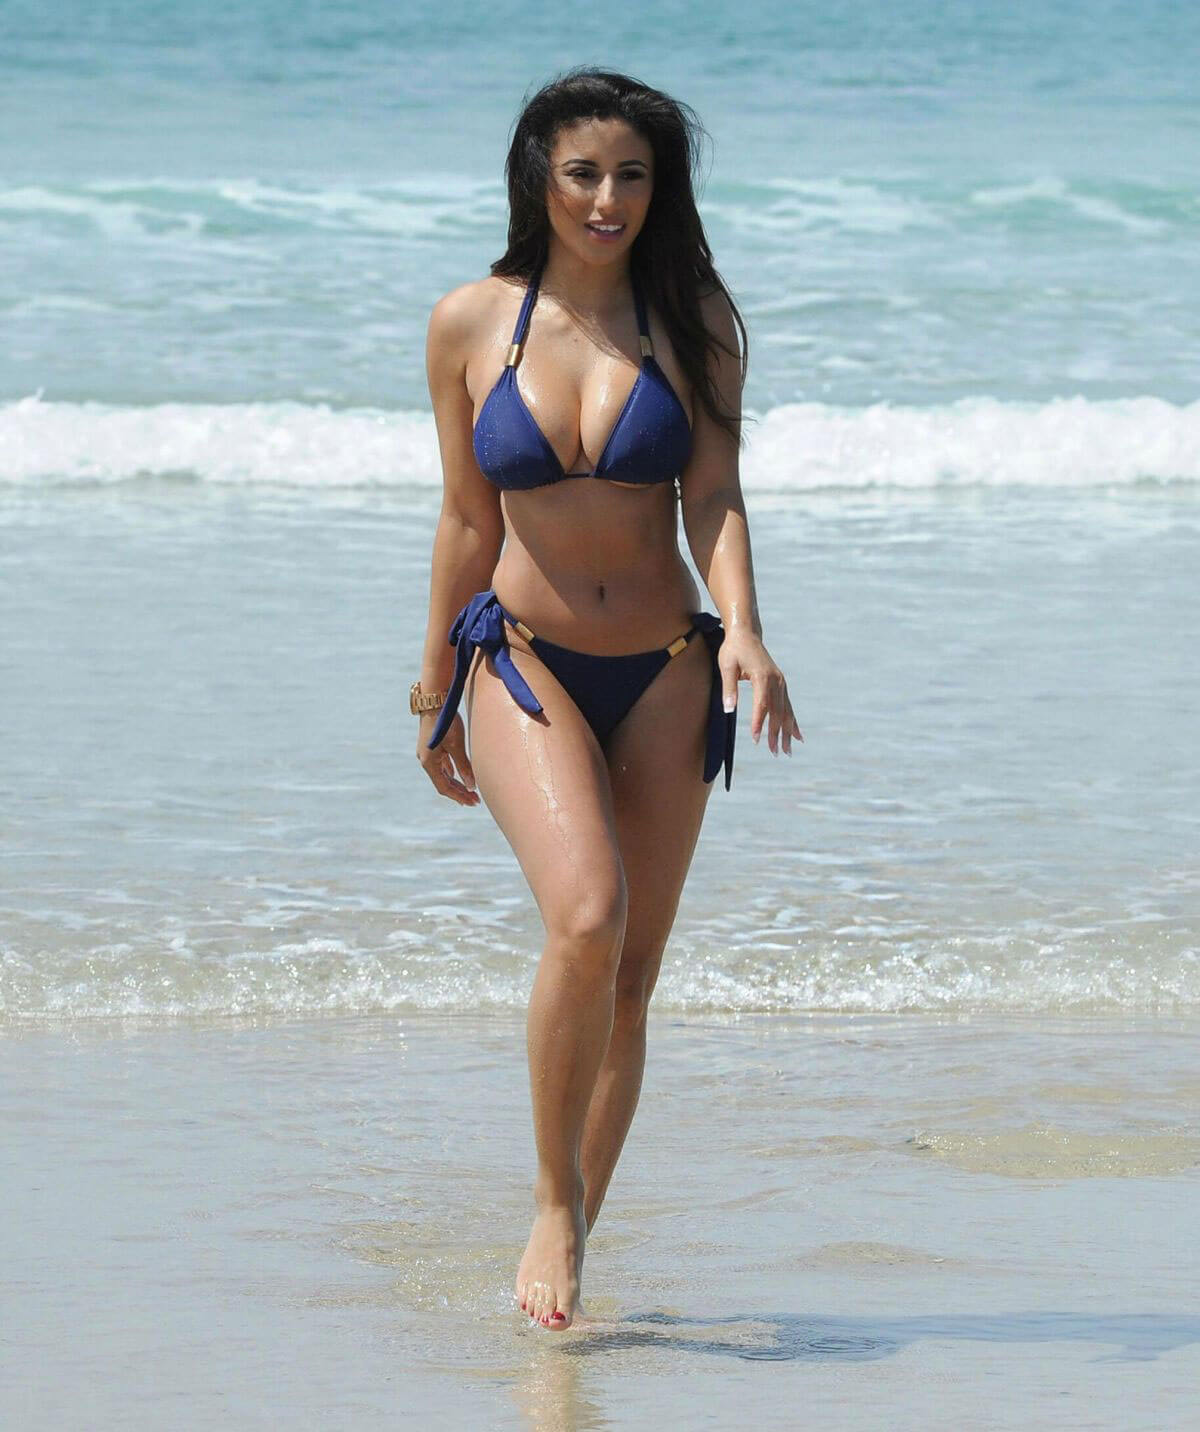 kayleigh morris stills in bikini at a beach in cyprus 2018 01 15 02 - Kayleigh Morris Stills in Bikini at a Beach in Cyprus 2018/01/15